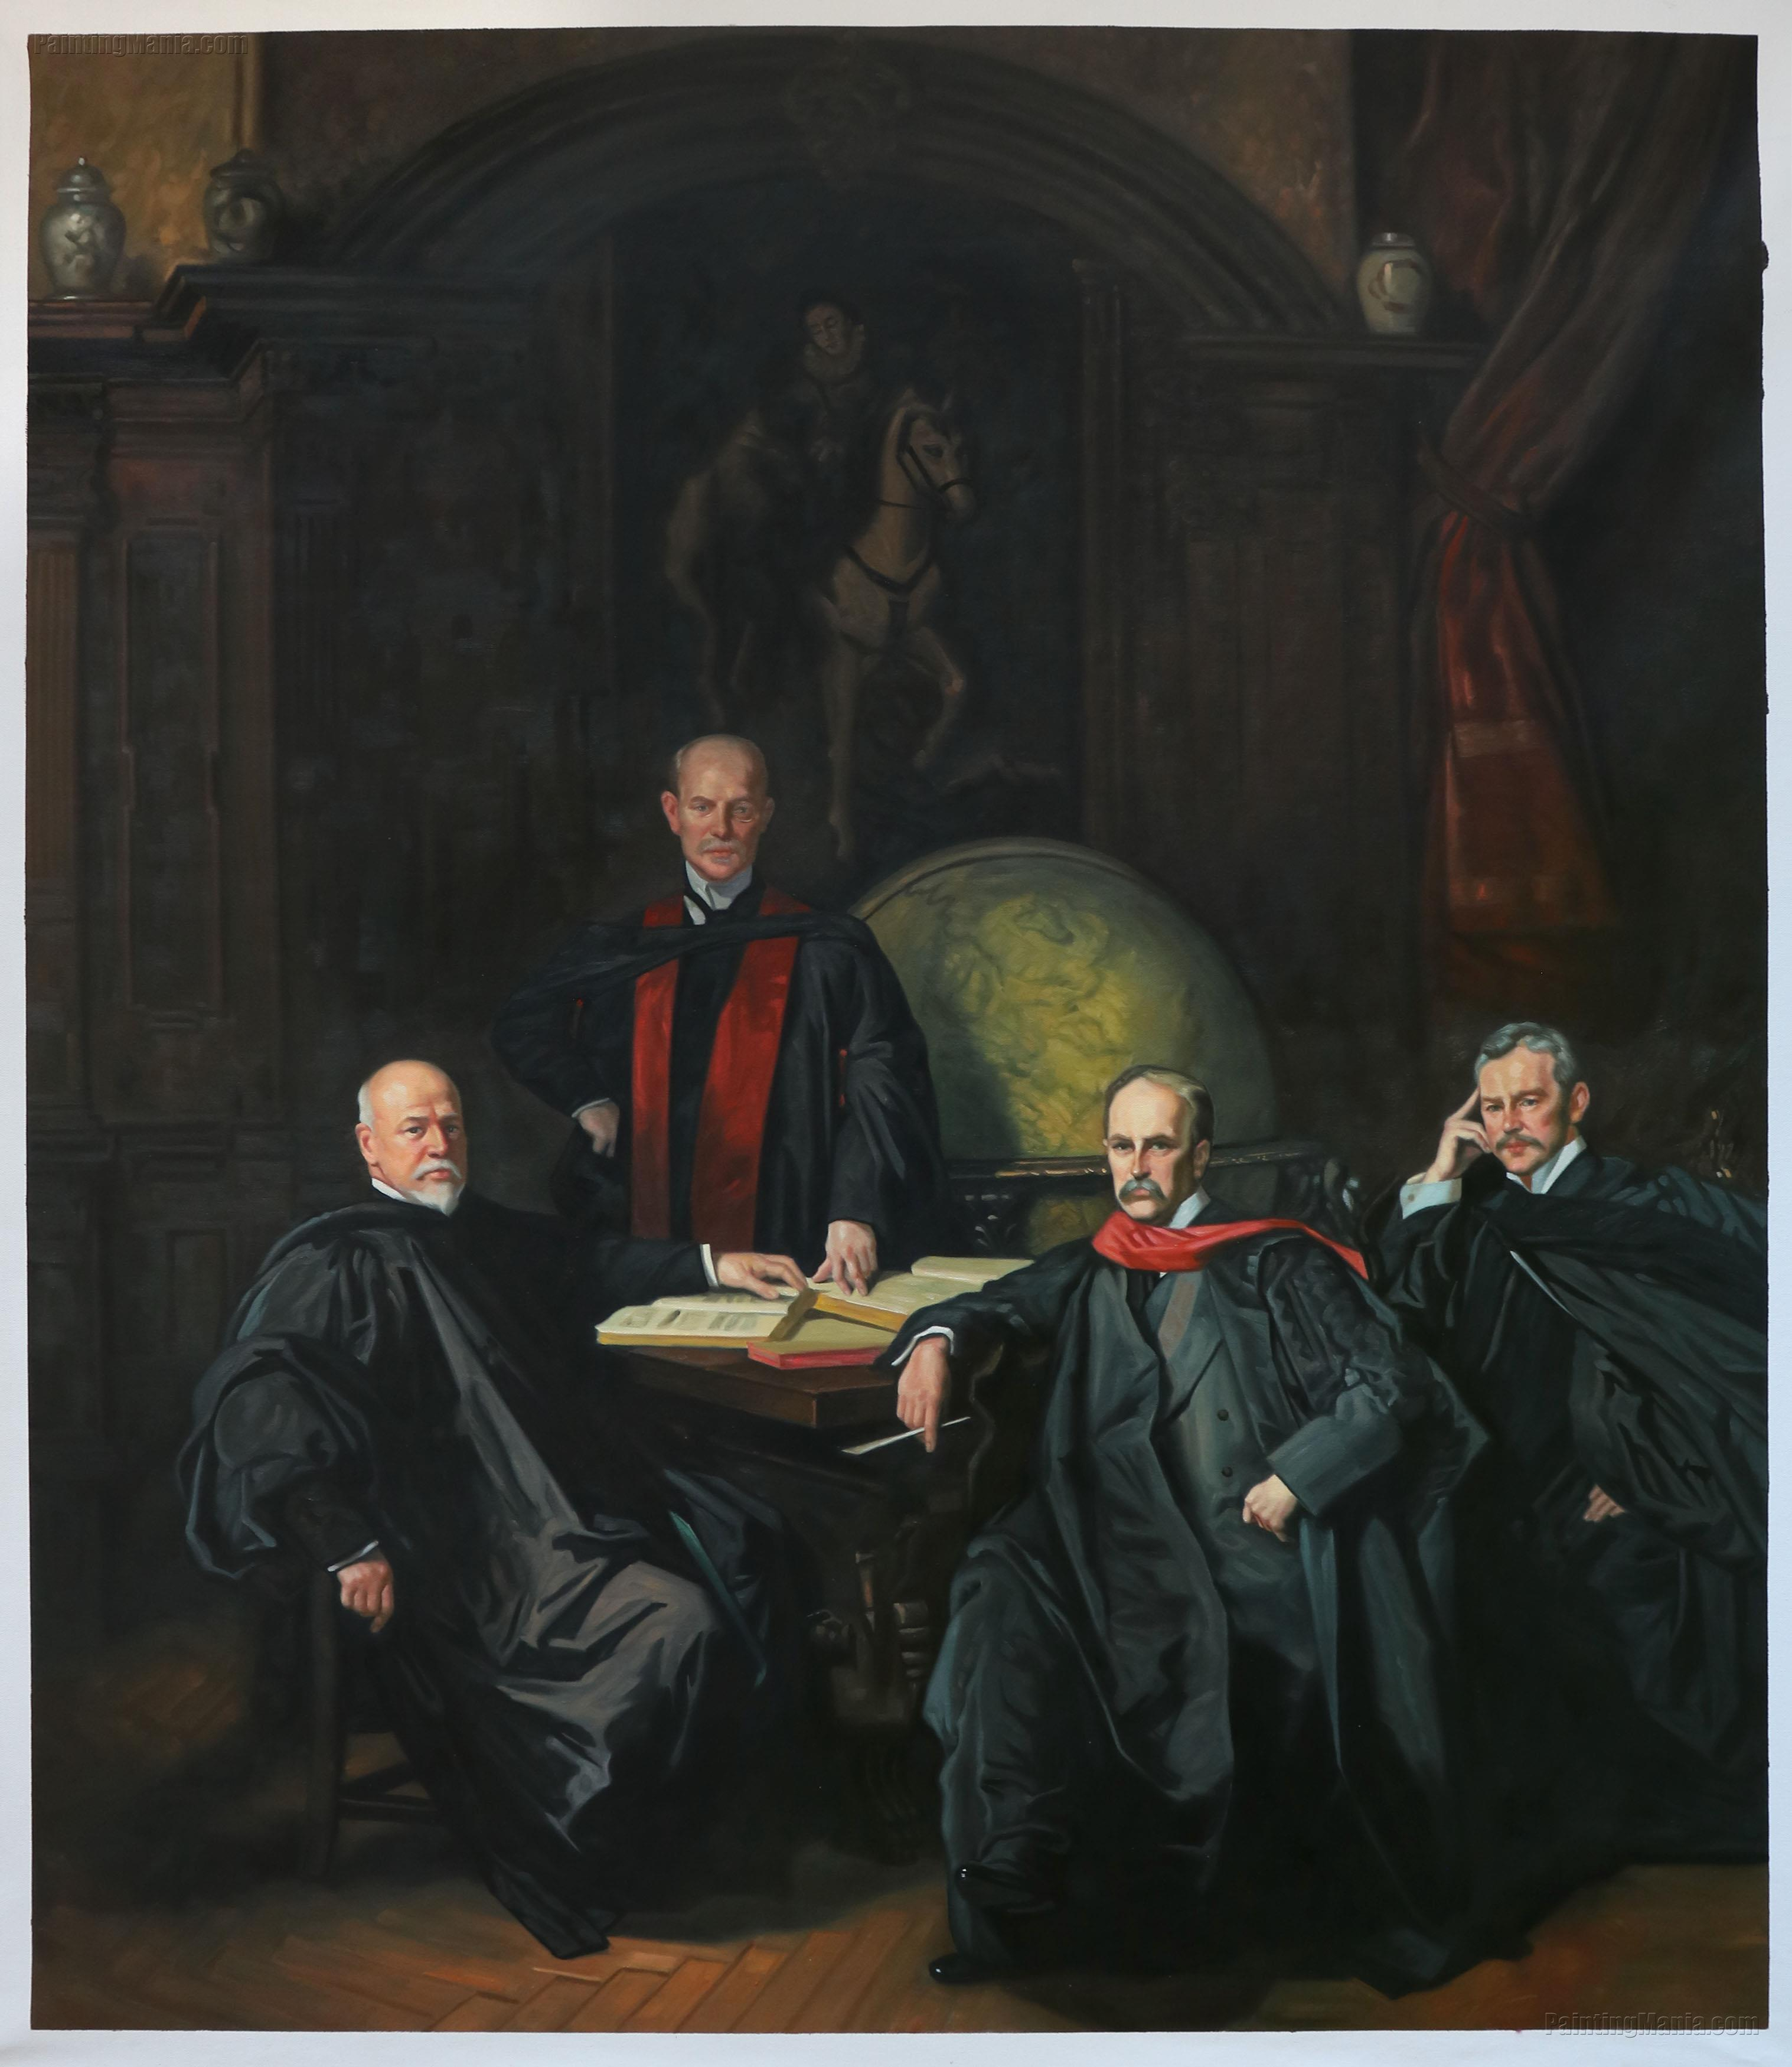 Professors Welch, Halsted, Osler and Kelly (The Four Doctors)